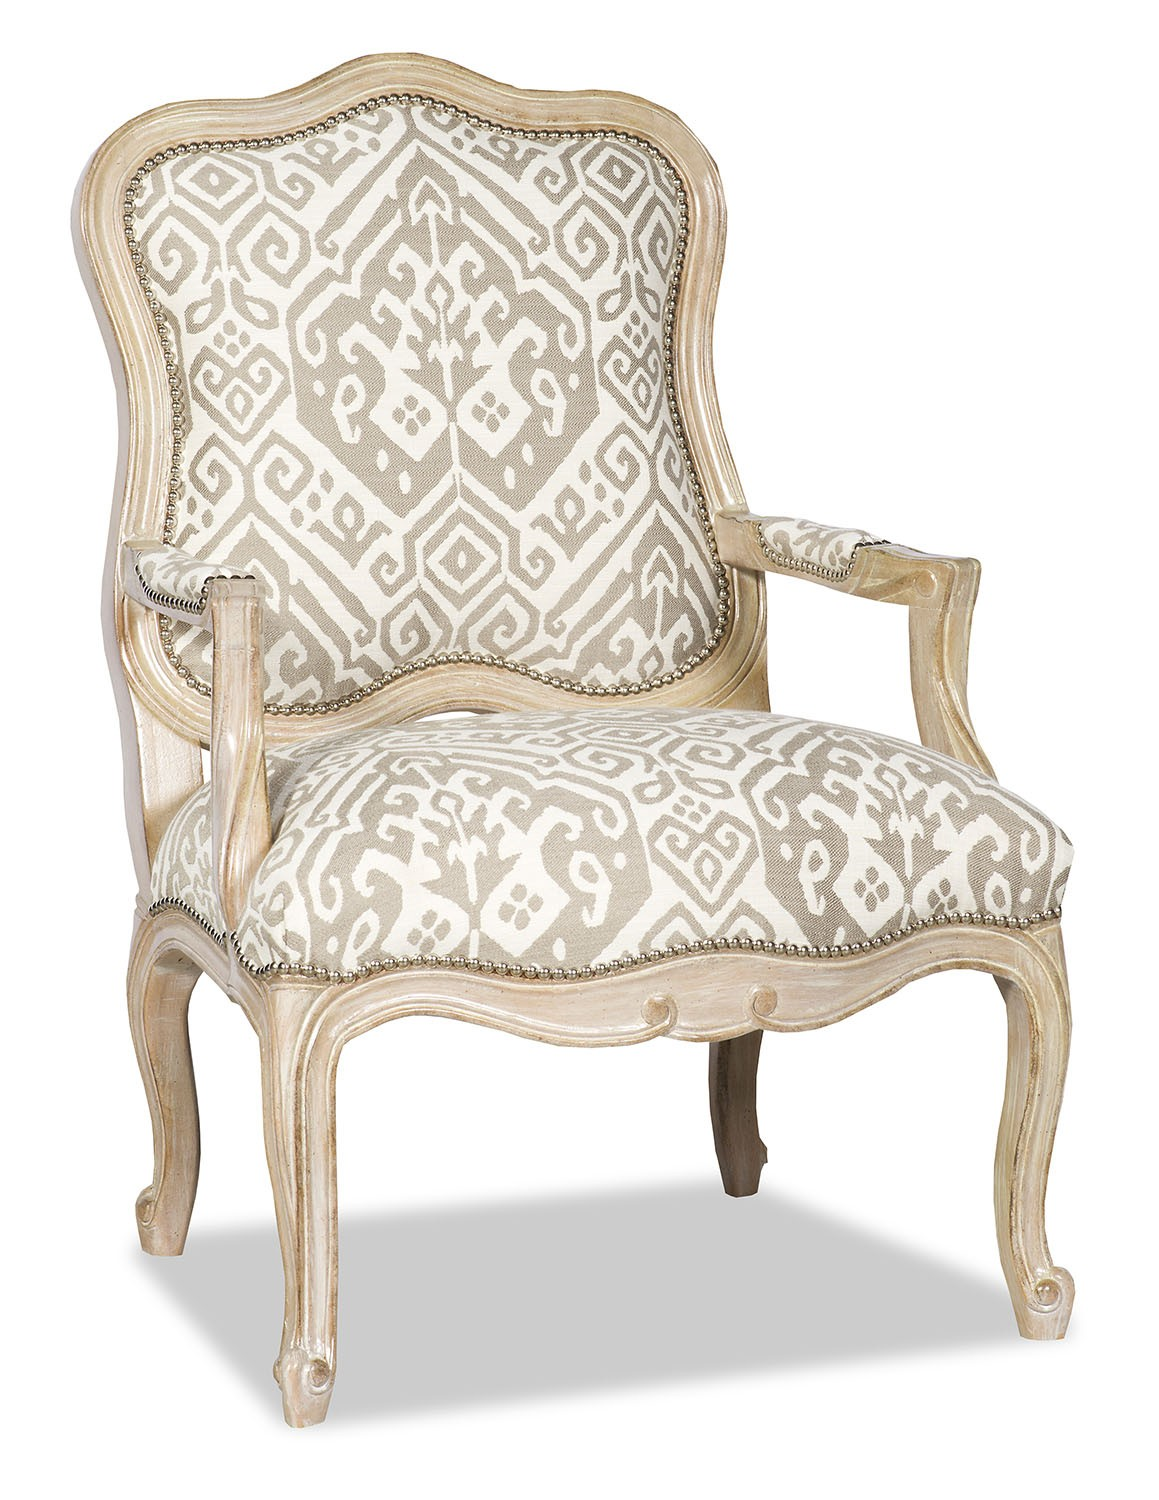 CHAIRS, Leather, Upholstered, Accent Elegant Ikat Armchair